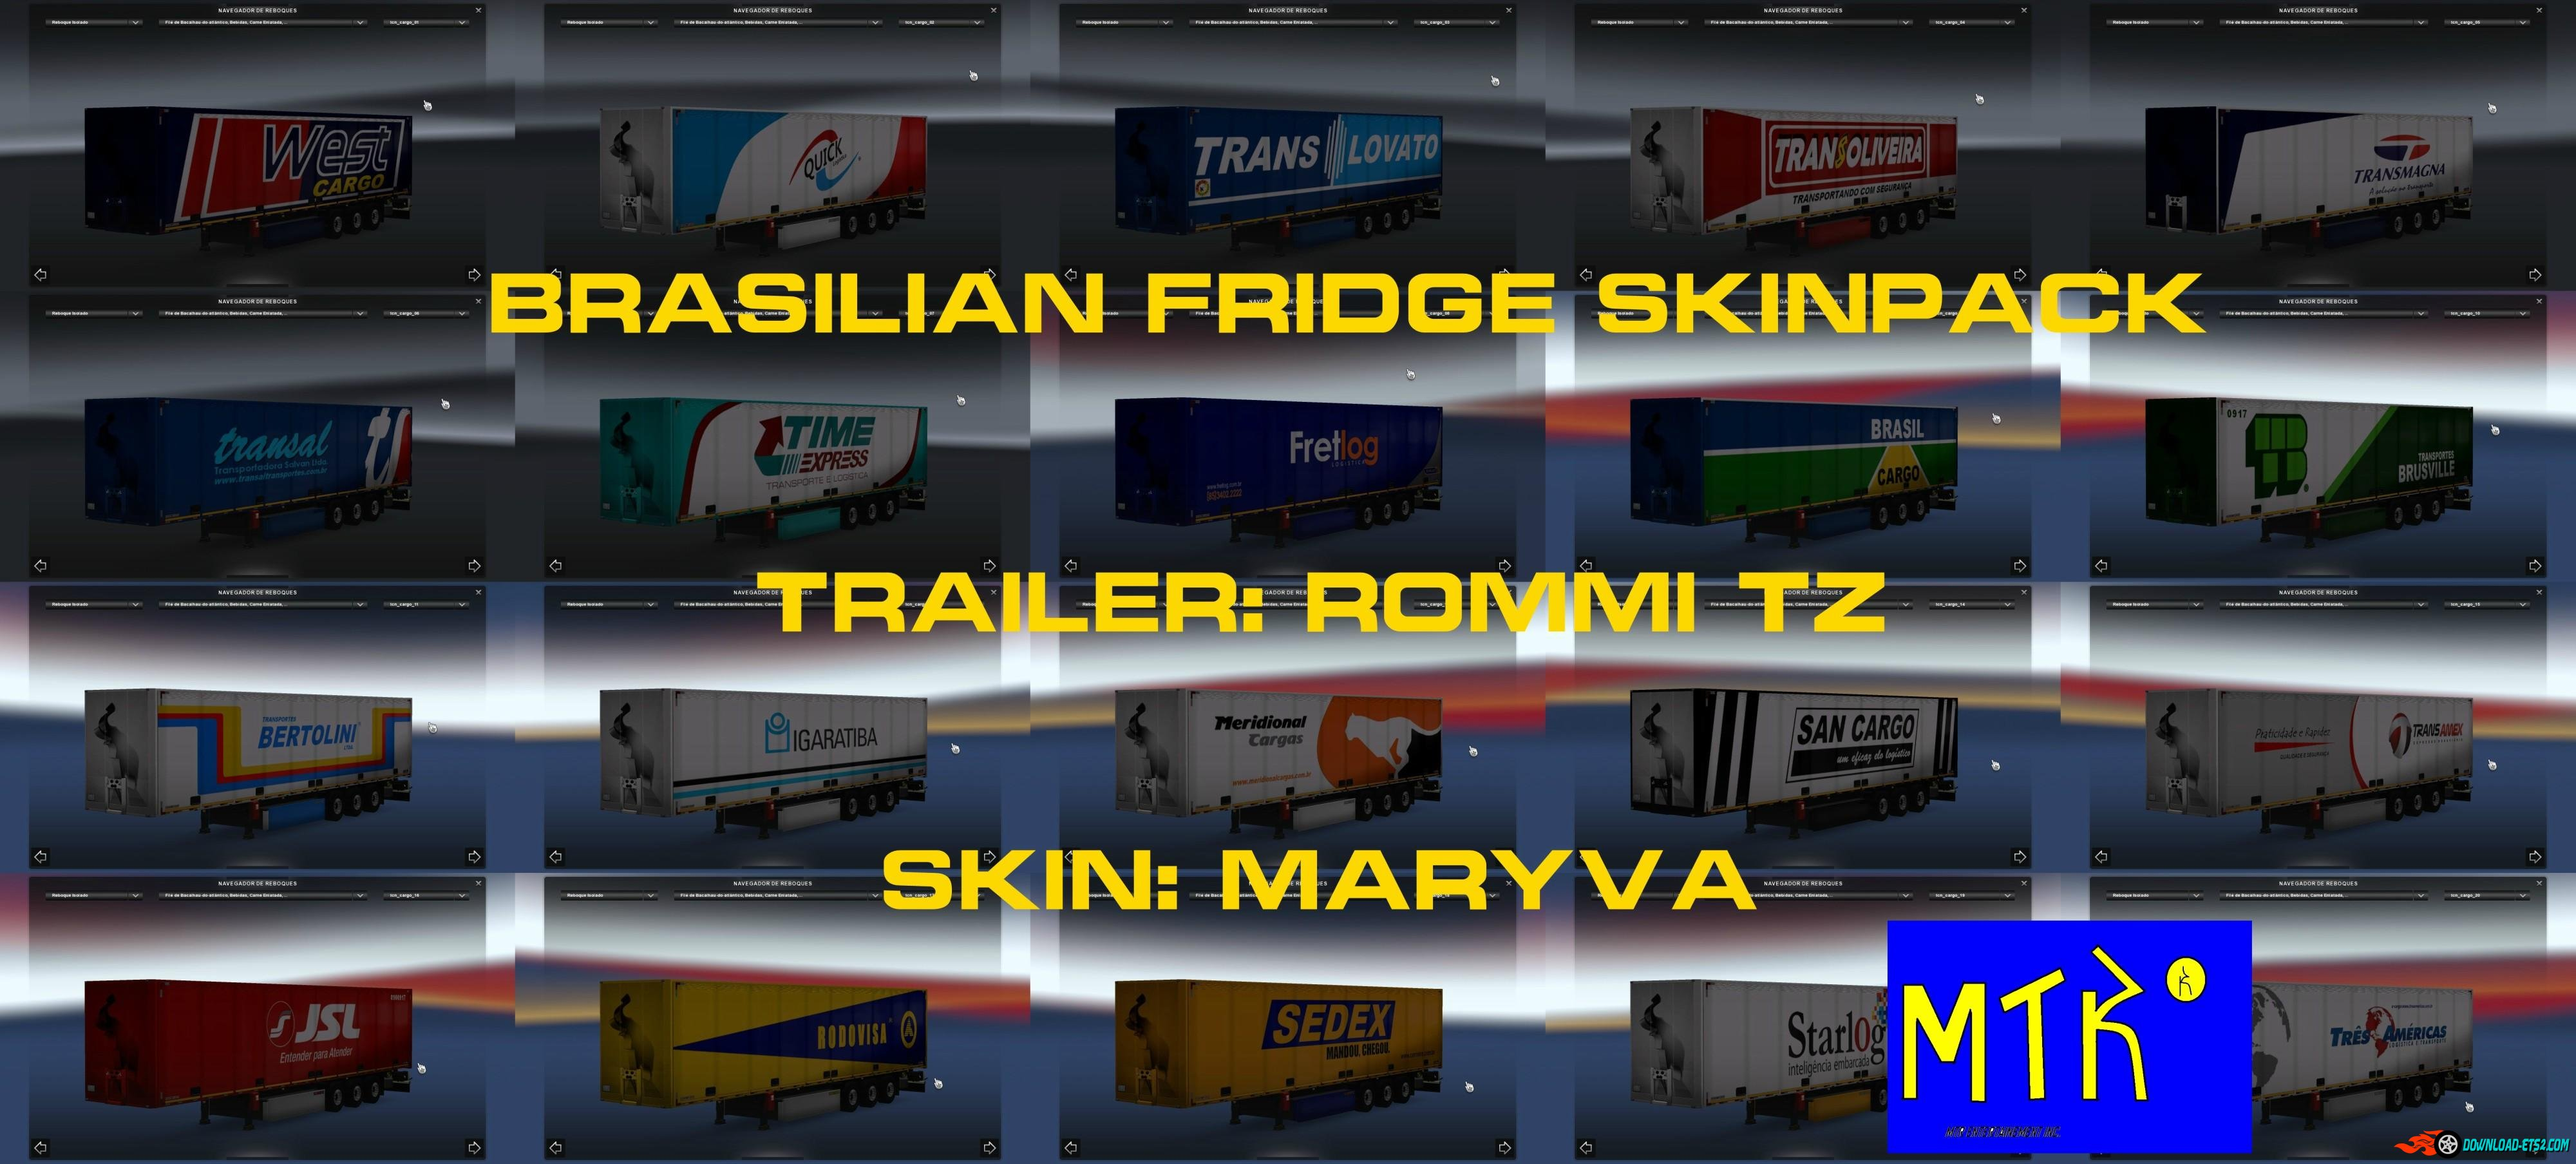 Brazilian Fridge Skinpack by Maryva